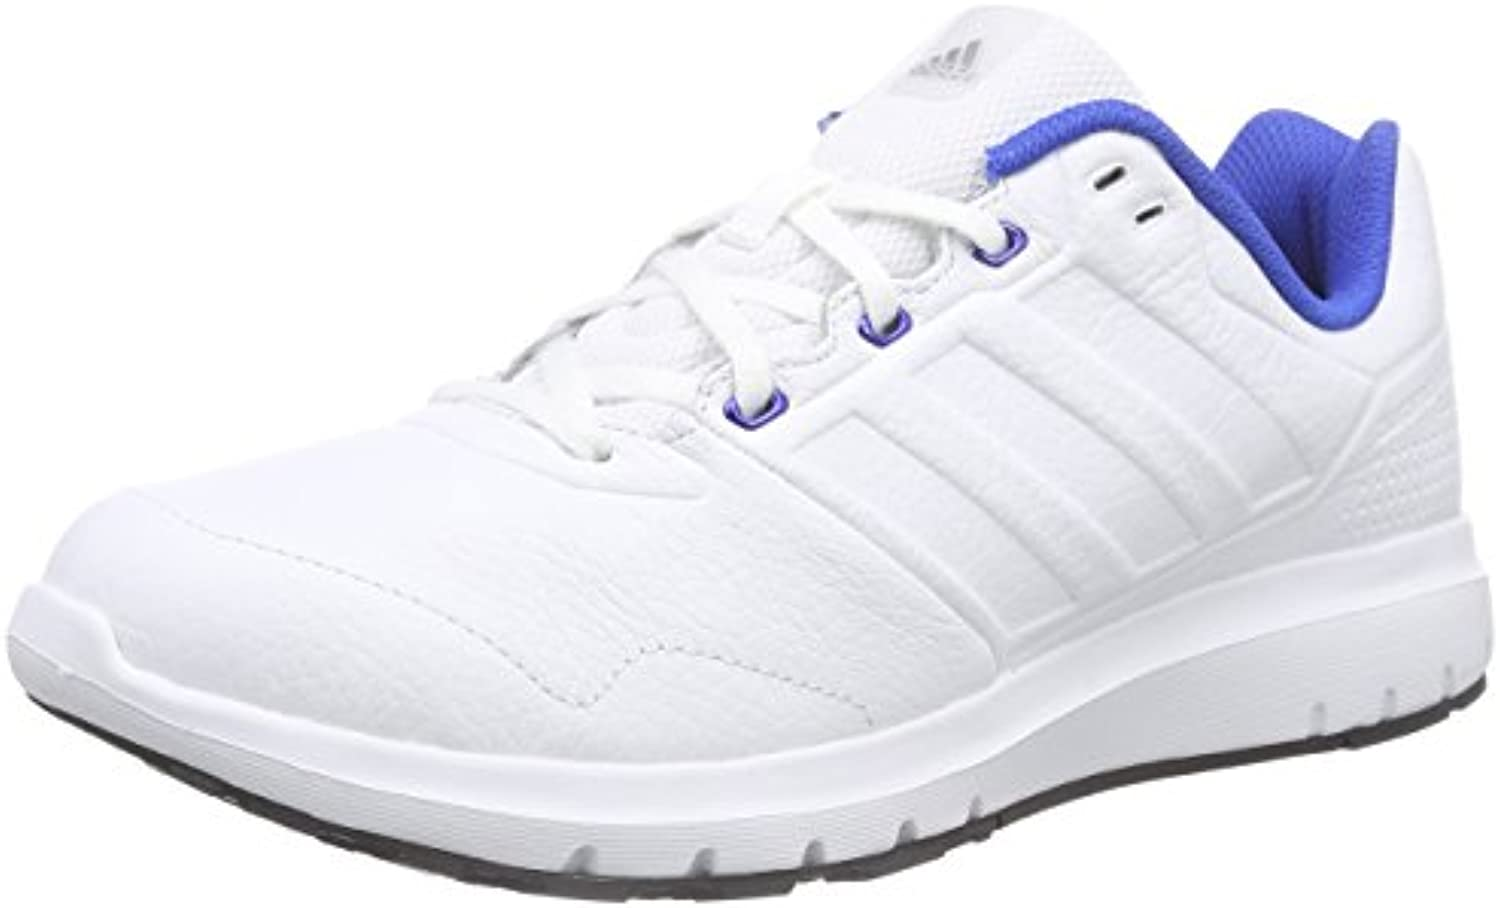 adidas Duramo Trainer Leather Herren Laufschuhe